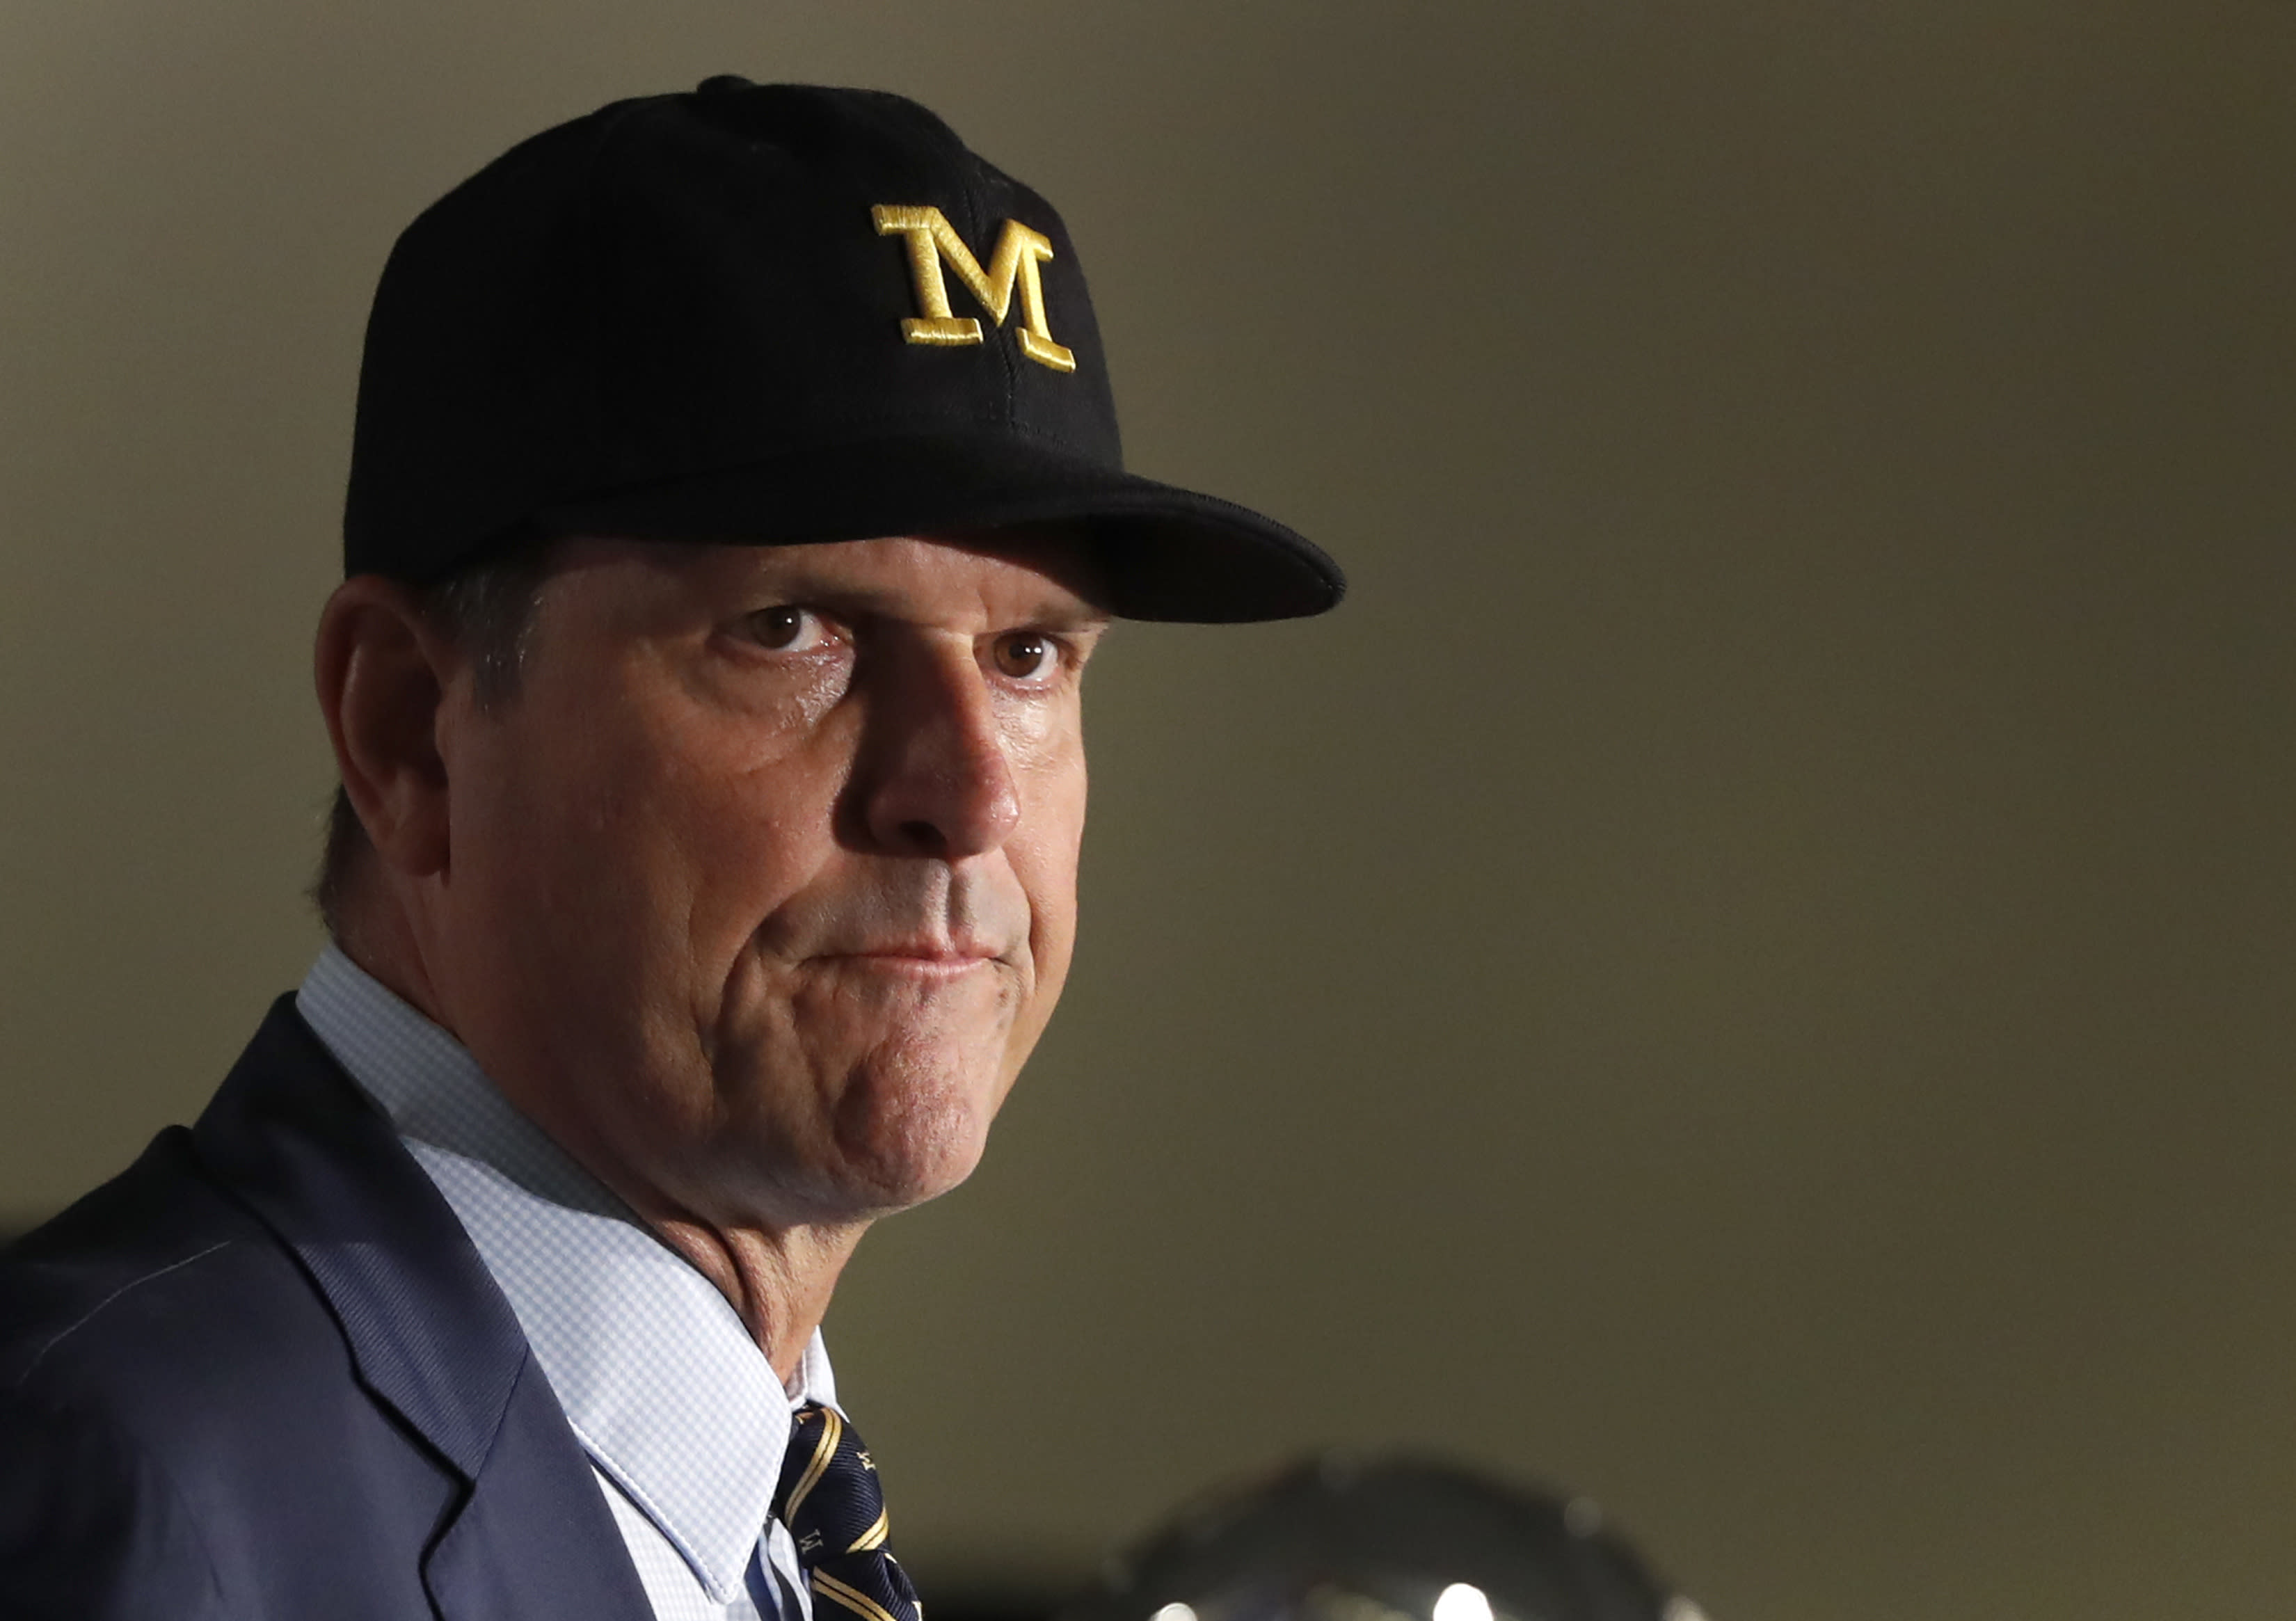 Michigan head coach Jim Harbaugh listens to a question during the Big Ten Conference NCAA college football media days Friday, July 19, 2019, in Chicago. (AP Photo/Charles Rex Arbogast)